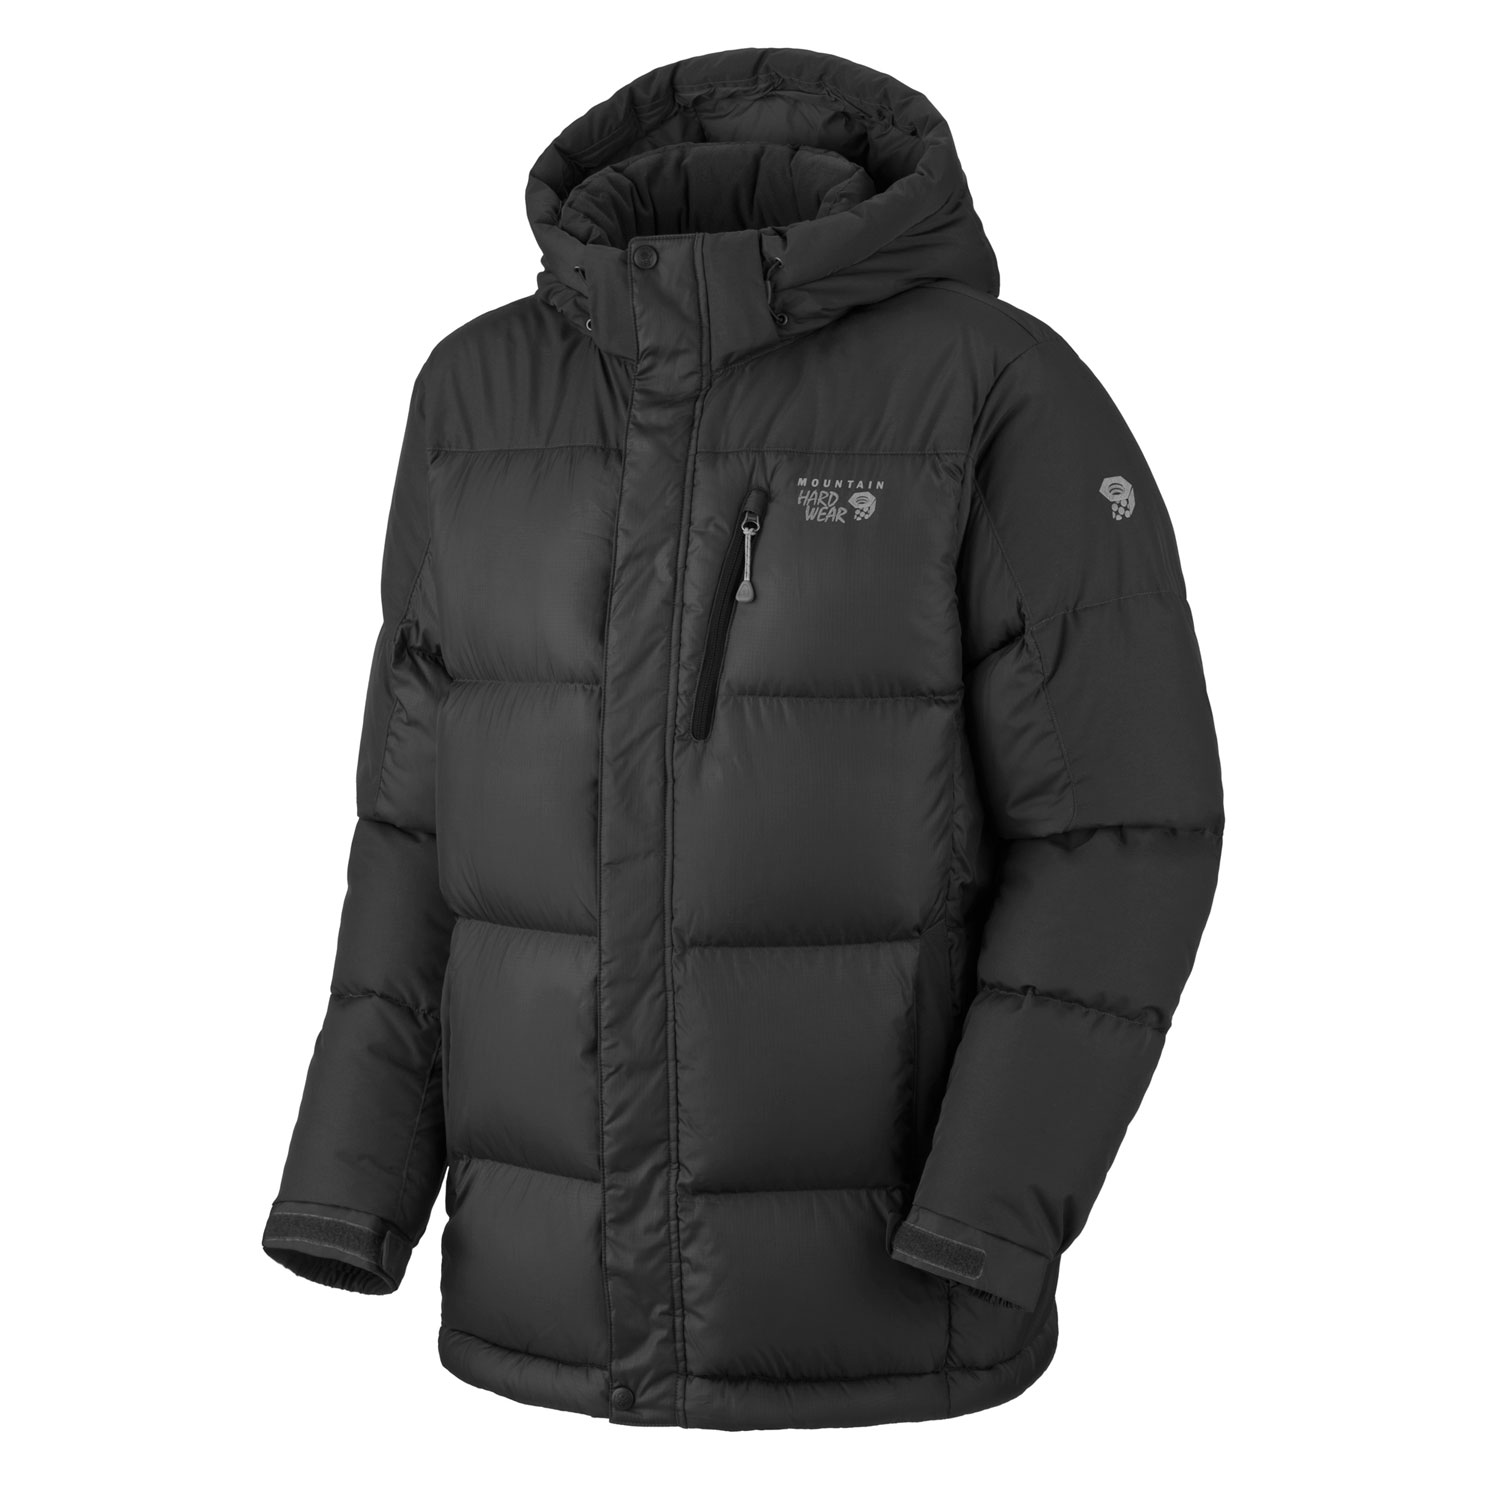 "Key Features of the Mountain Hardwear Hunker Down Parka Down Jacket: Avg. weight: 1 lb 15 oz; 870g Center back length: 32"" Fabric: body: 50D Rip (100% polyester) insulation: 650-Fill Goose Down Insulated with lofty and warm 650-fill goose down Abrasion-resistant reinforcement panels on the shoulders and arms combat wear and tear Zip-off insulated hood Fleece-lined handwarmer pockets Adjustable cuffs for fit options Dual hem drawcords for quick fit adjustments Interior zip pocket stores ID, keys, other small essentials Micro-Chamois - lined chin guard prevents zipper chafe - $160.95"